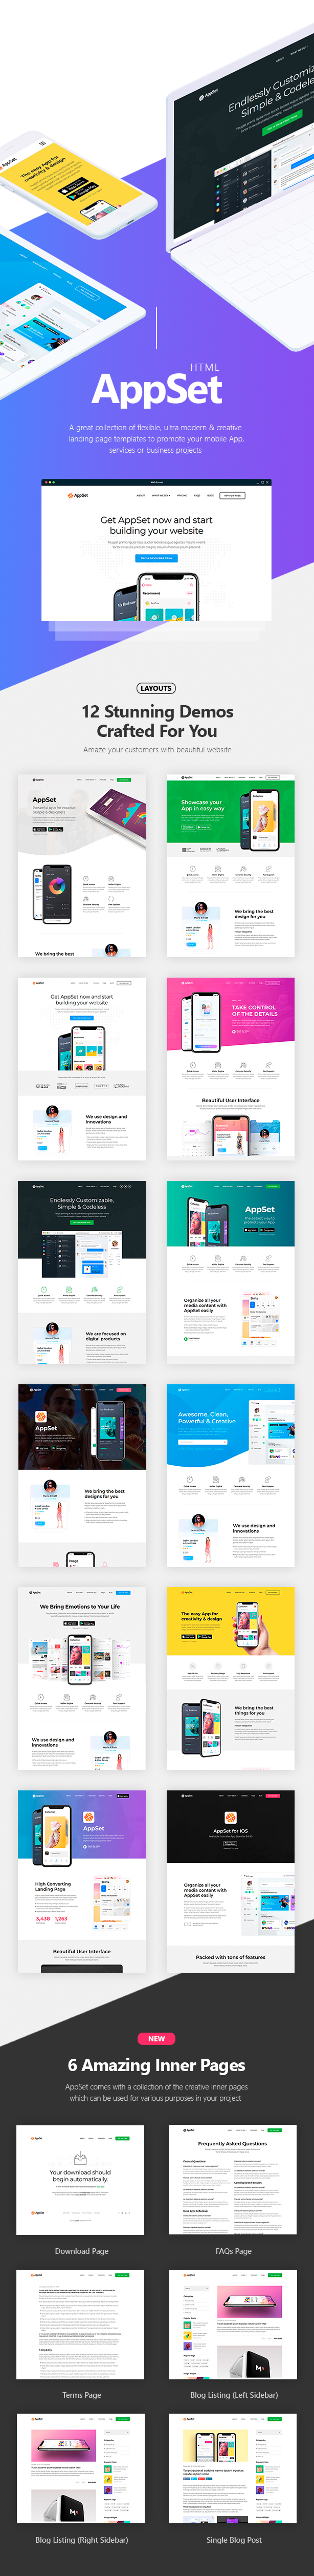 Appset App Landing Pages Pack